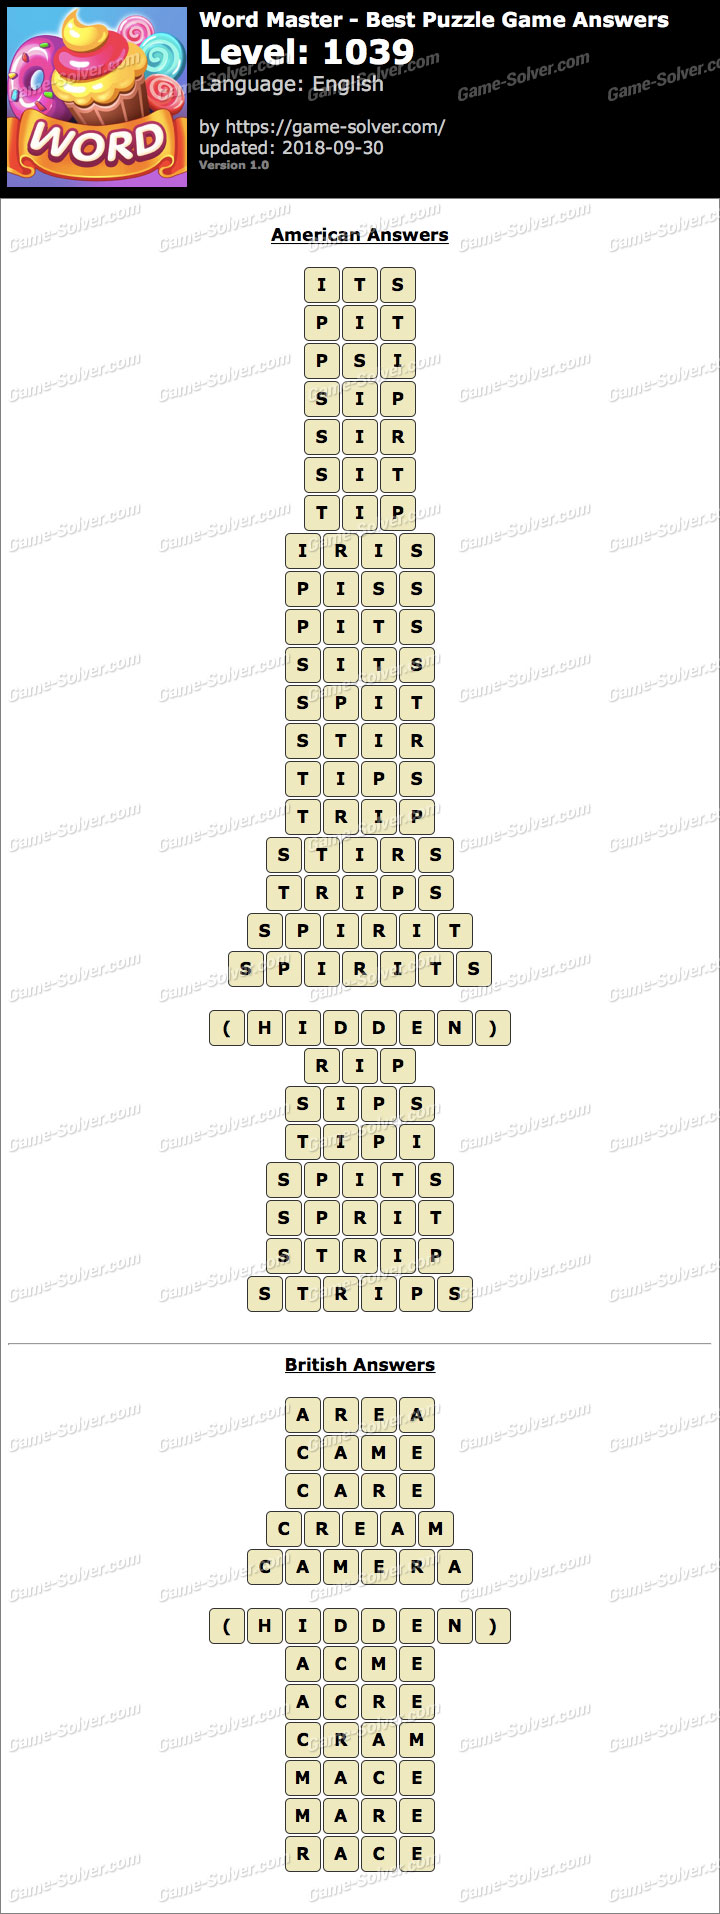 Word Master-Best Puzzle Game Level 1039 Answers